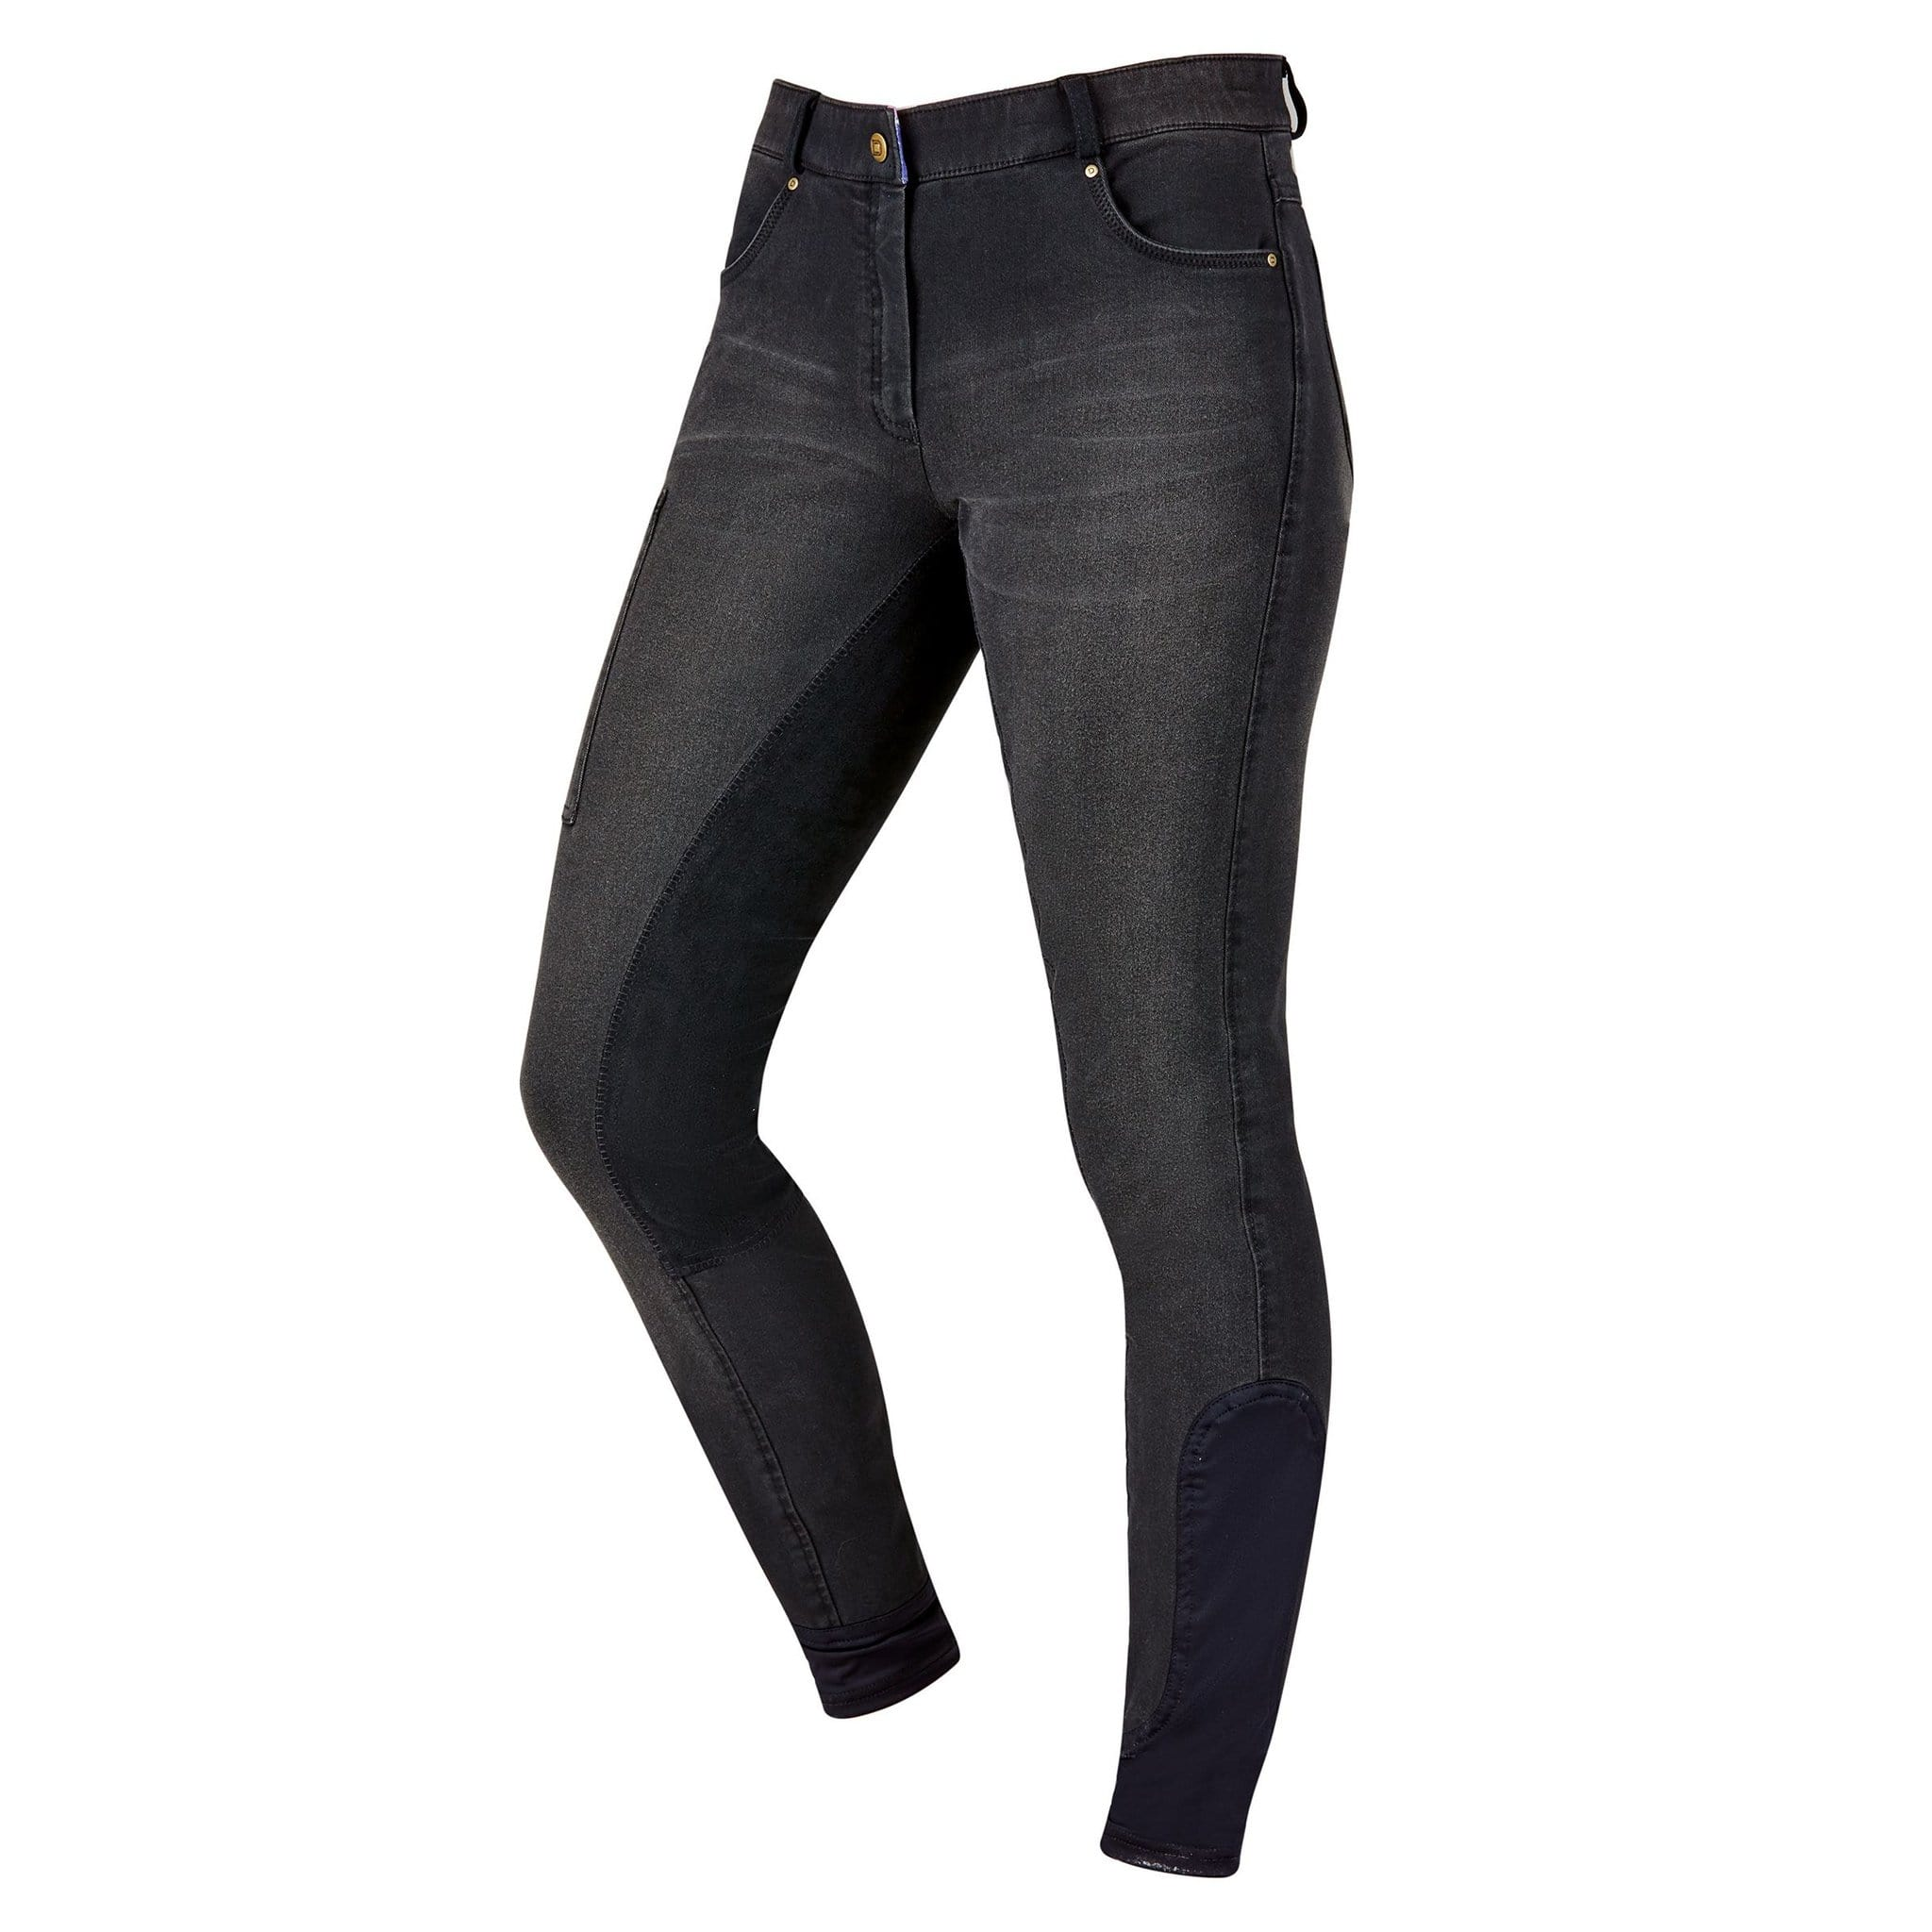 Dublin Shona Denim Alos Full Seat Breeches 1001807 Ash Black Grey Front